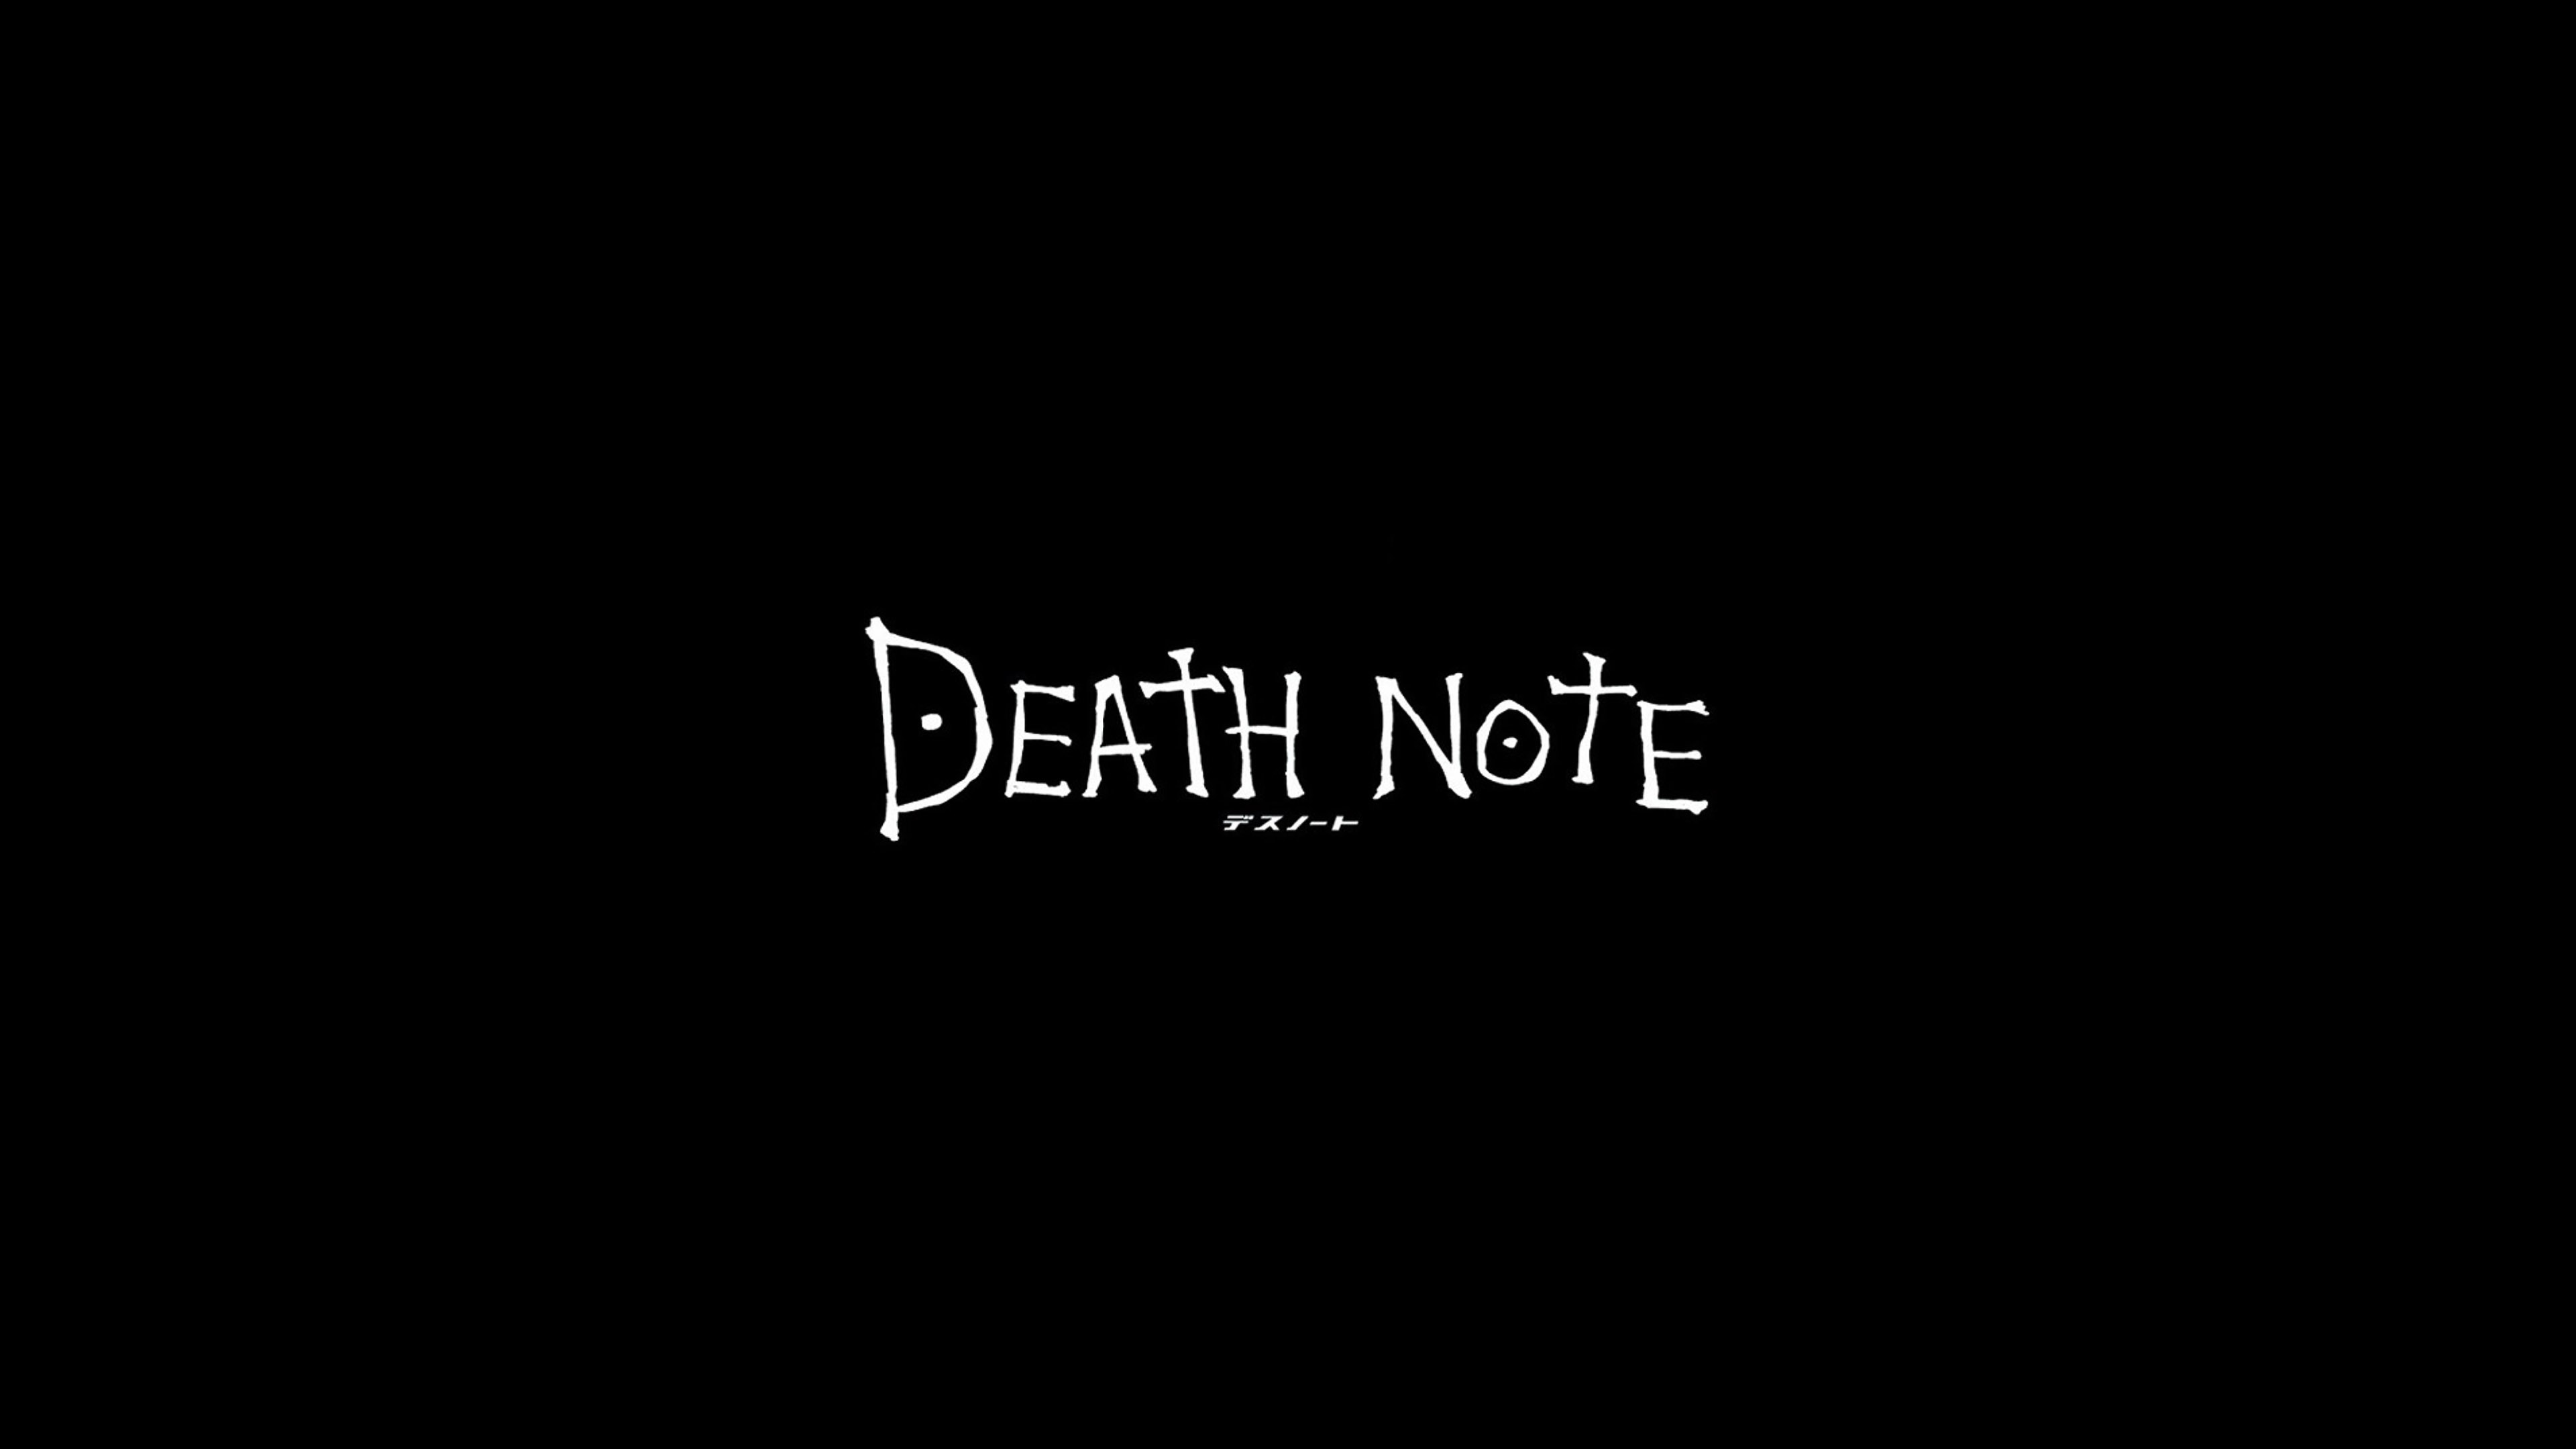 Pc Cartoon Fall Wallpapers Ac77 Wallpaper Death Note Cartoon Illust Minimal Papers Co